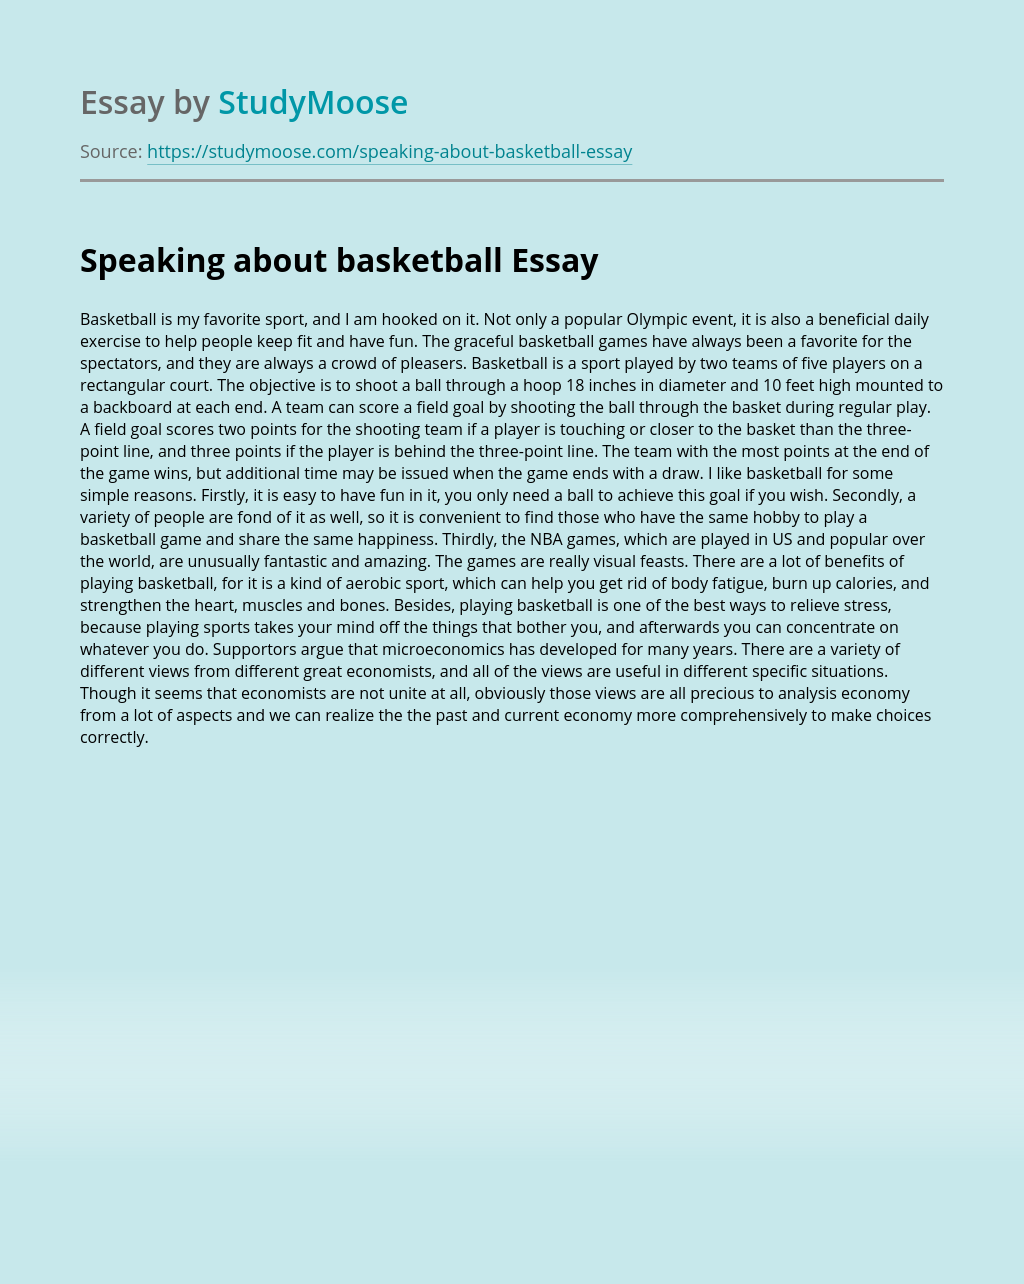 Basketball essay